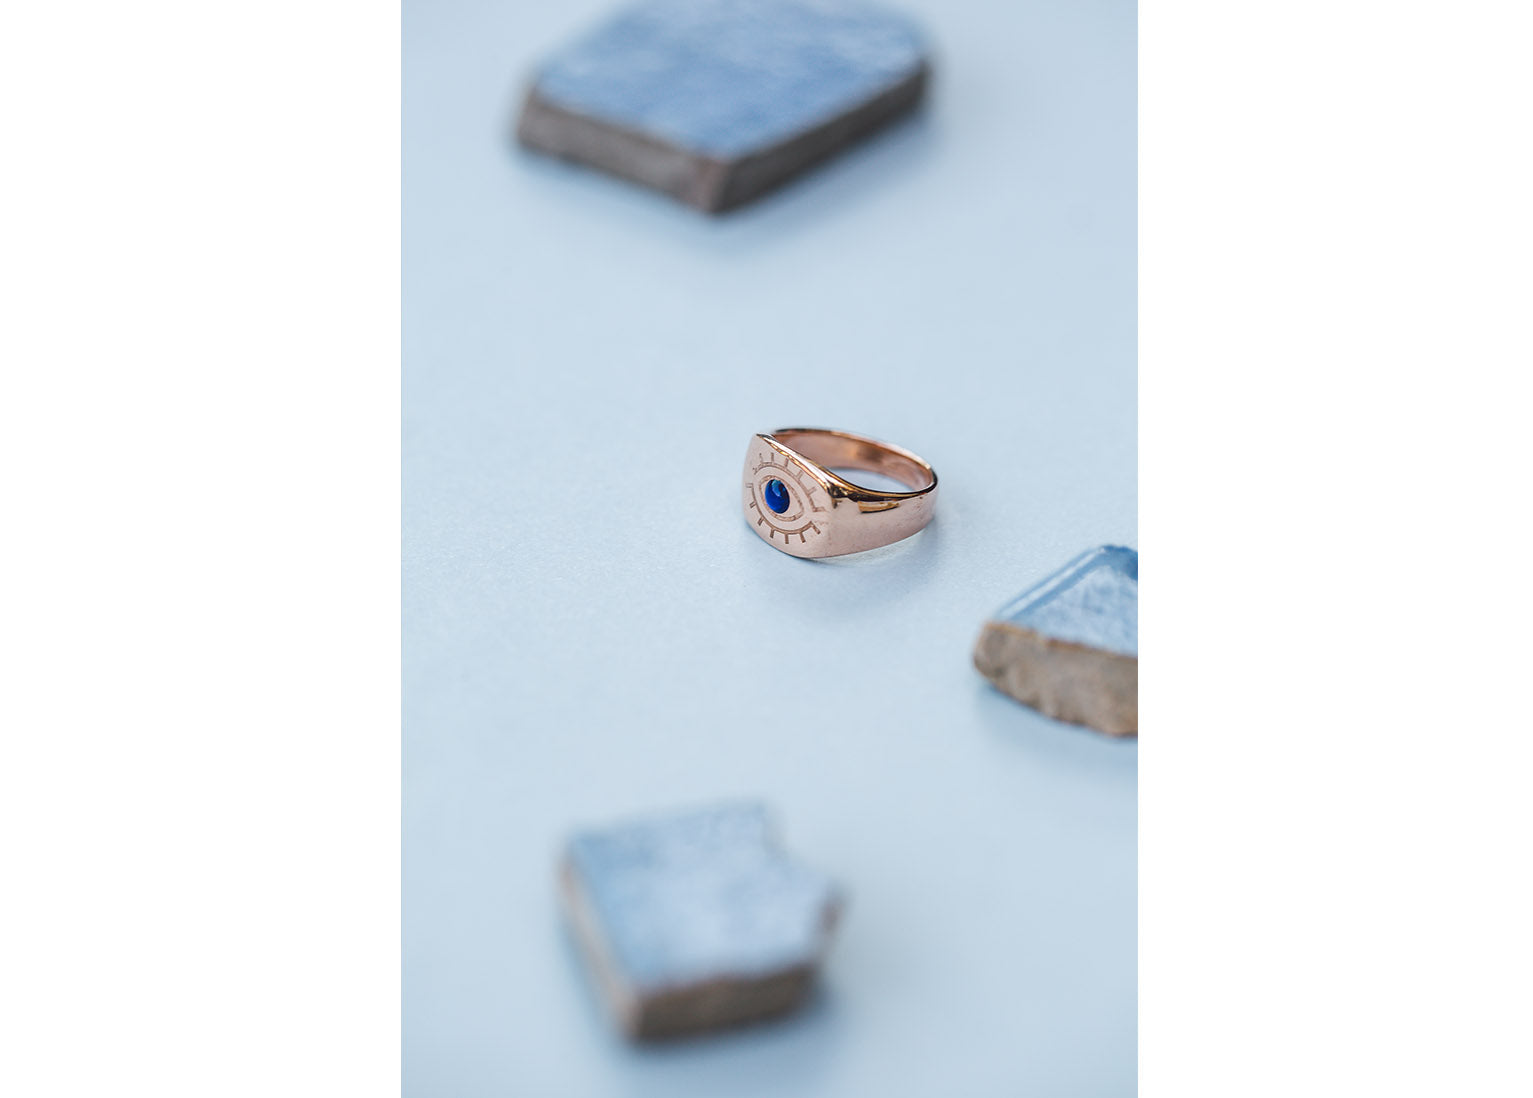 An evil eye rose gold signet ring designed by independent designers Lucky culture, this ring is made from sterling silver and finished in rose gold.